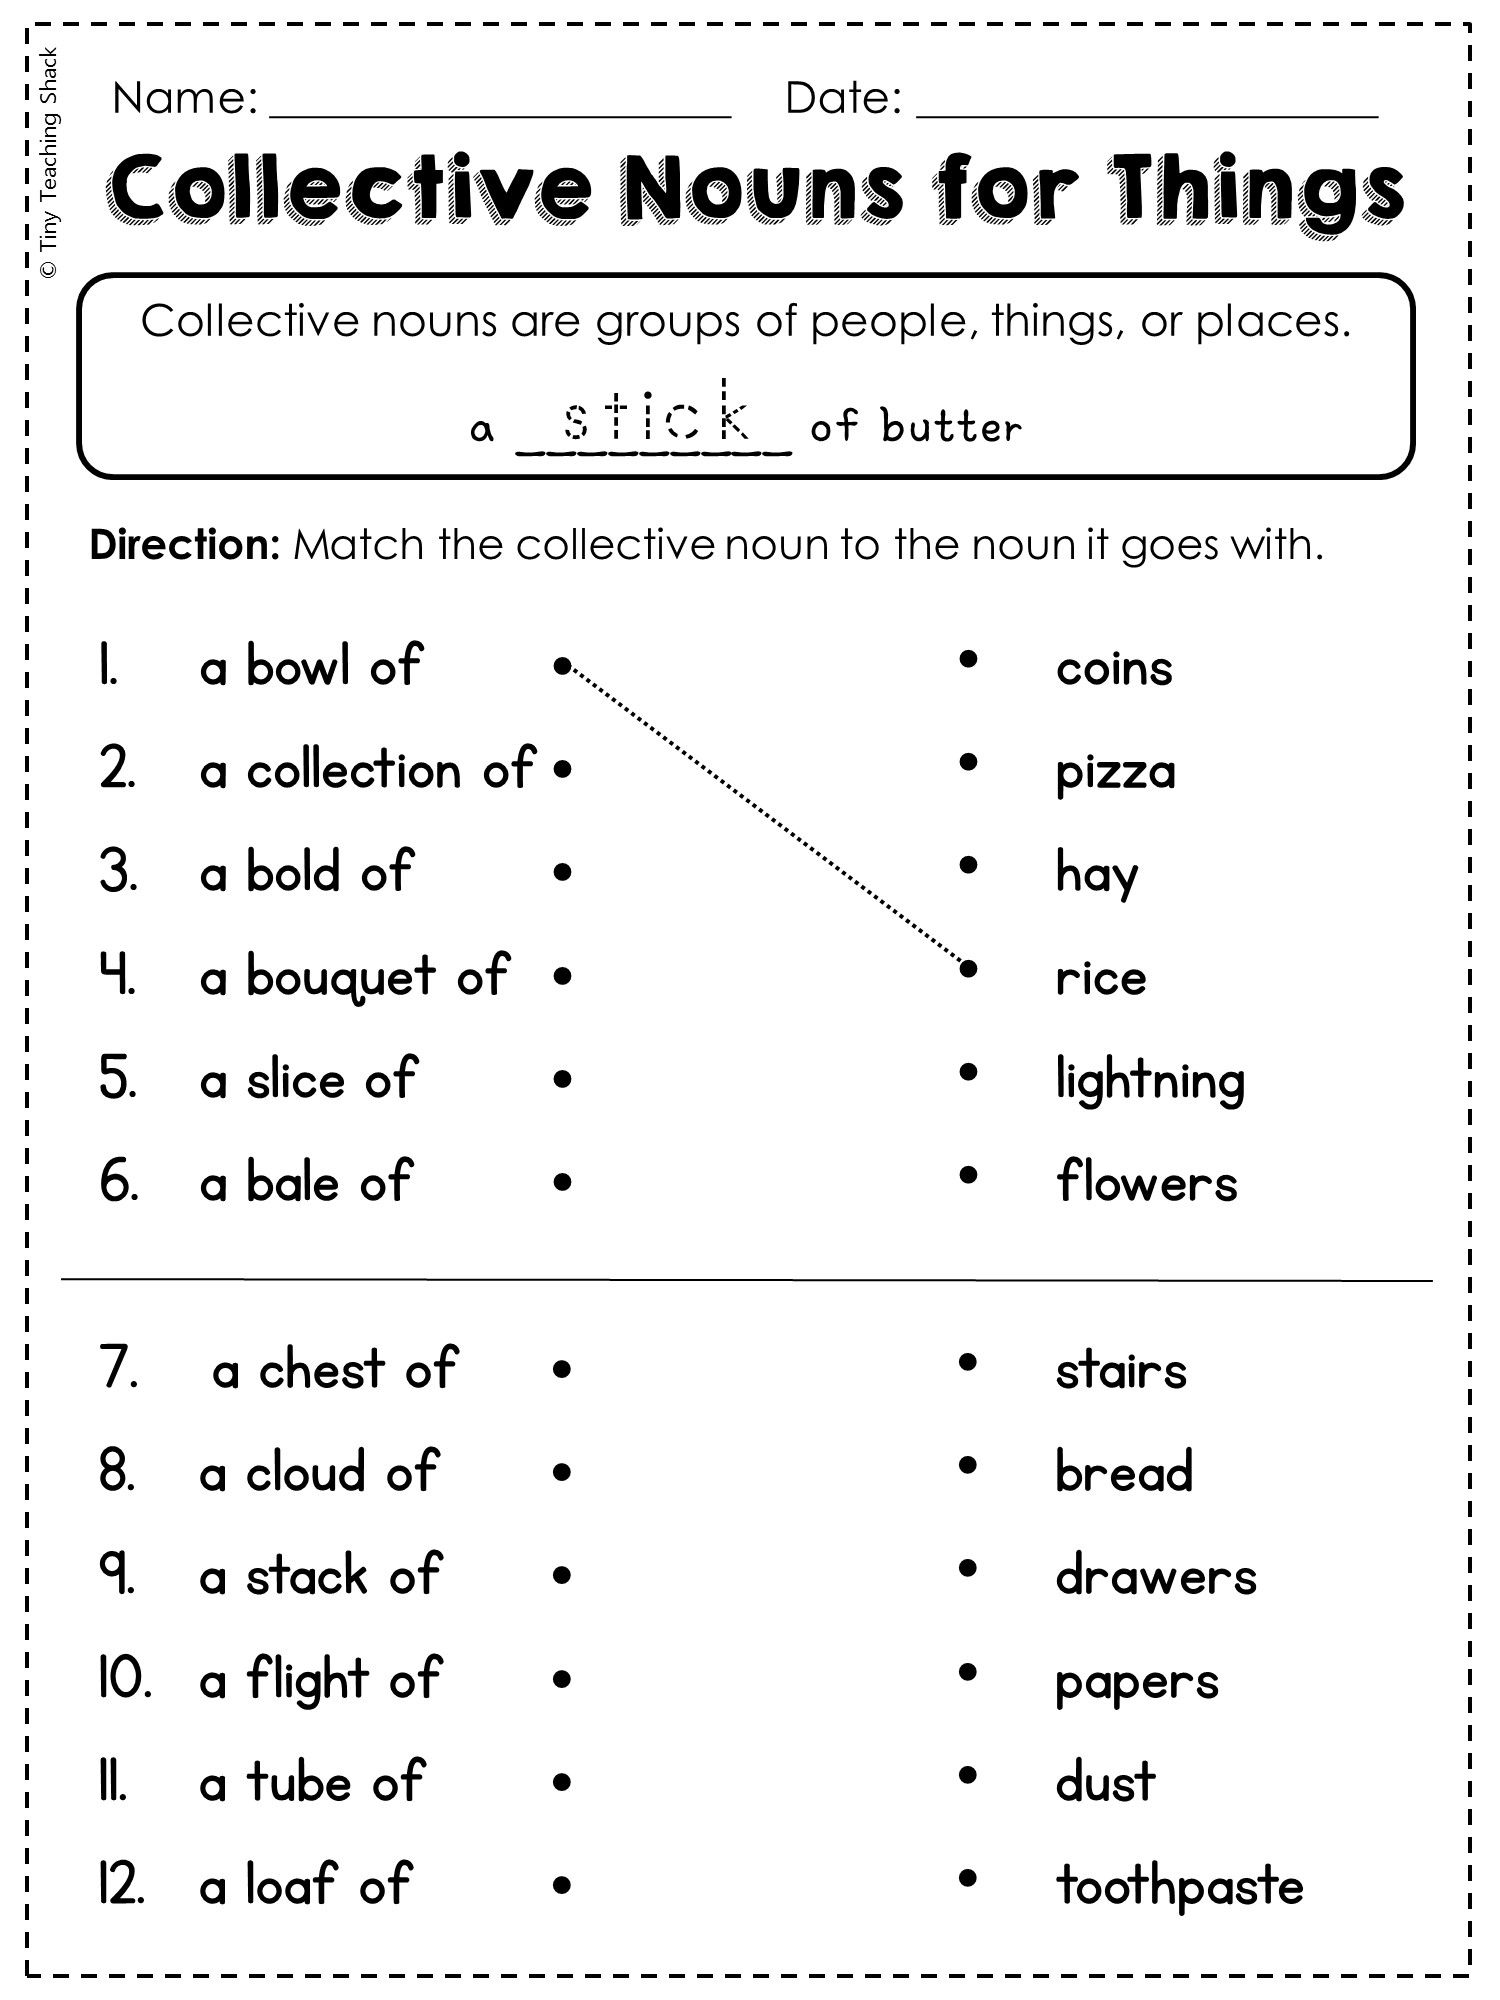 Worksheets Types Of Nouns Worksheet free collective noun worksheet mrs sziggy 2nd grade pinterest language arts and grammar practice sheets freebie common core or not school worksheetskindergarten worksheetscollec